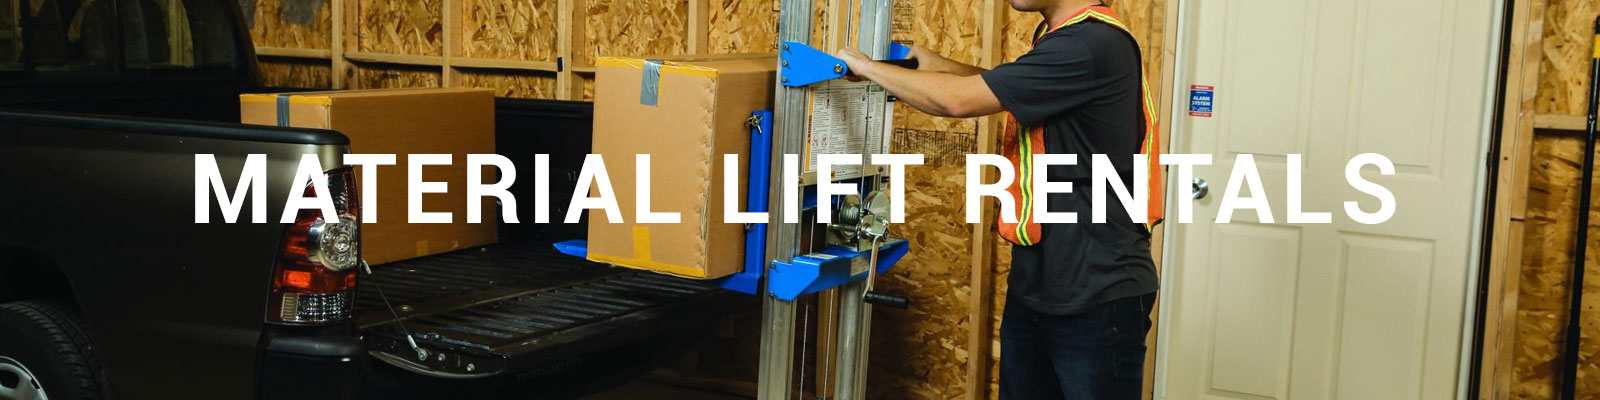 Rent a Material Lift | 12-21 Ft | 350-800 lbs  | Durante Rentals